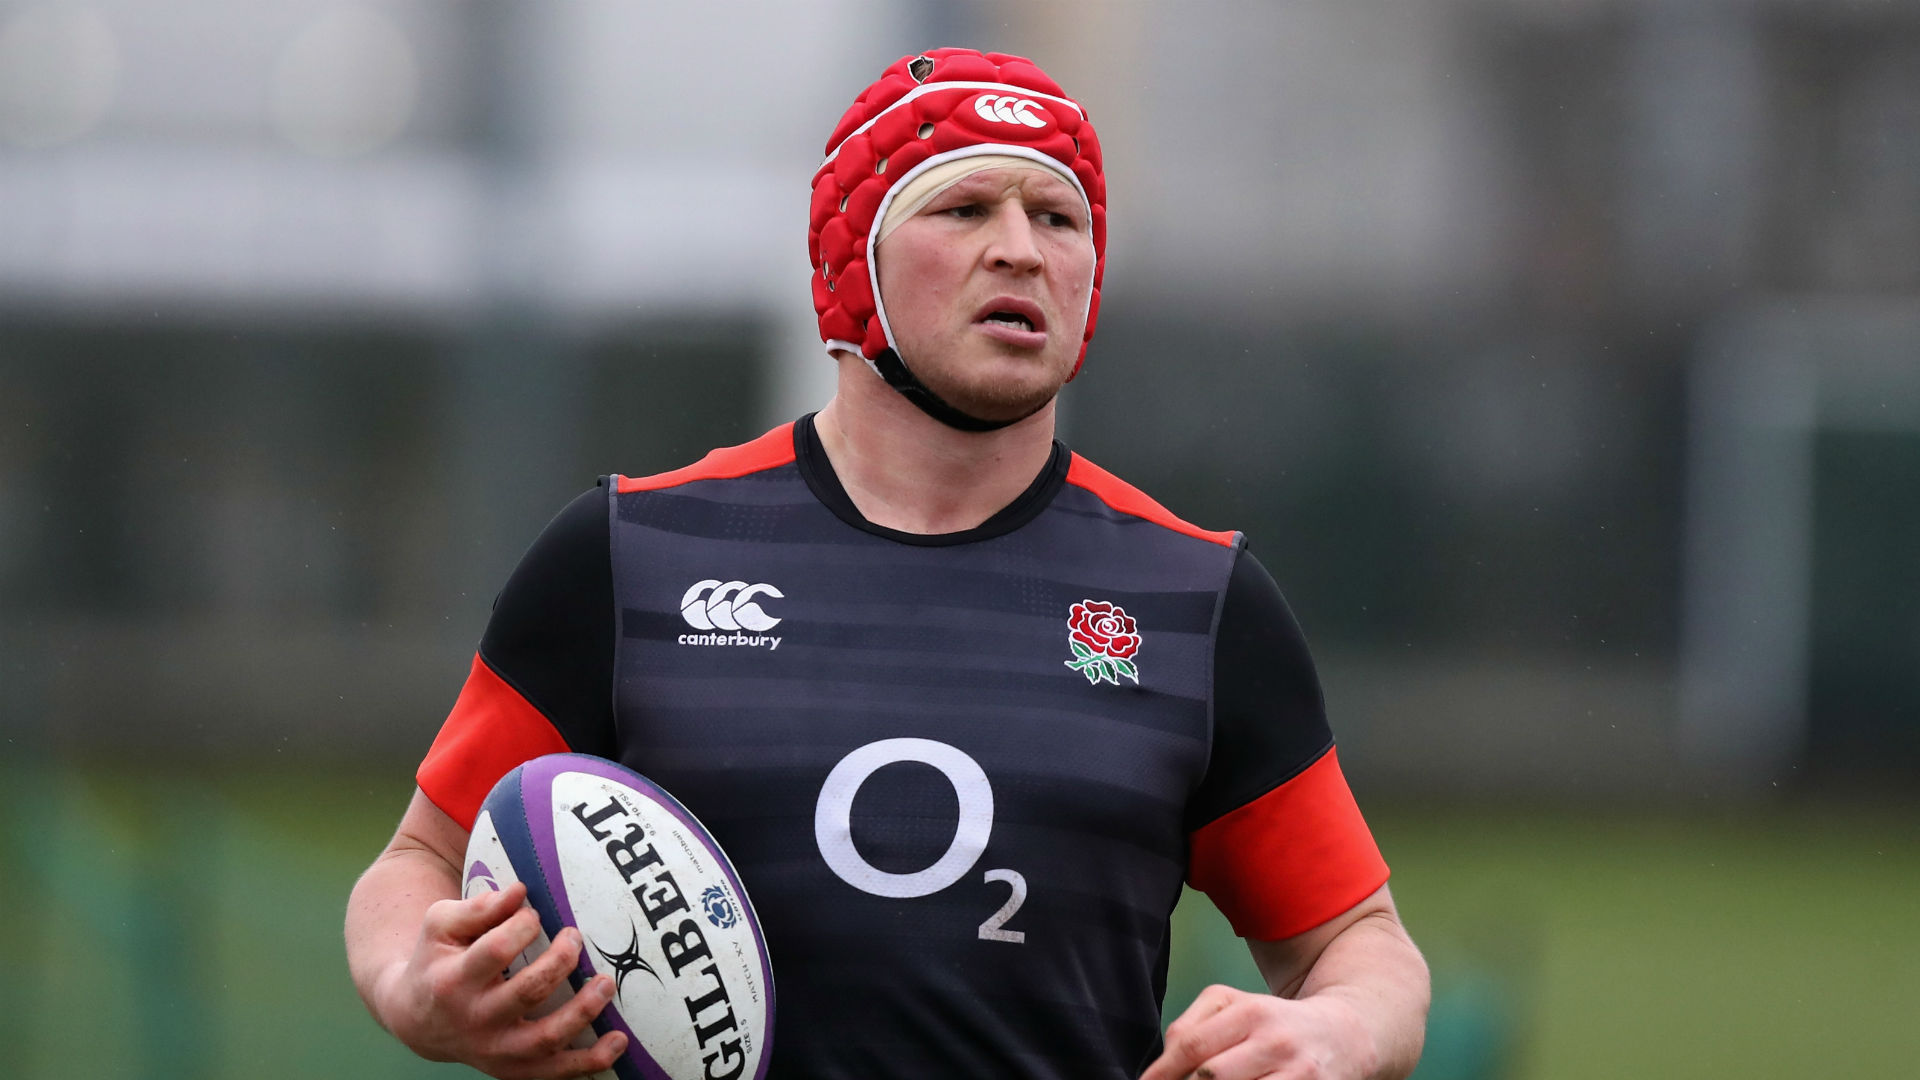 England's injury-hit hooker Dylan Hartley may not feature in the Rugby World Cup after being left out of Eddie Jones' training squad.